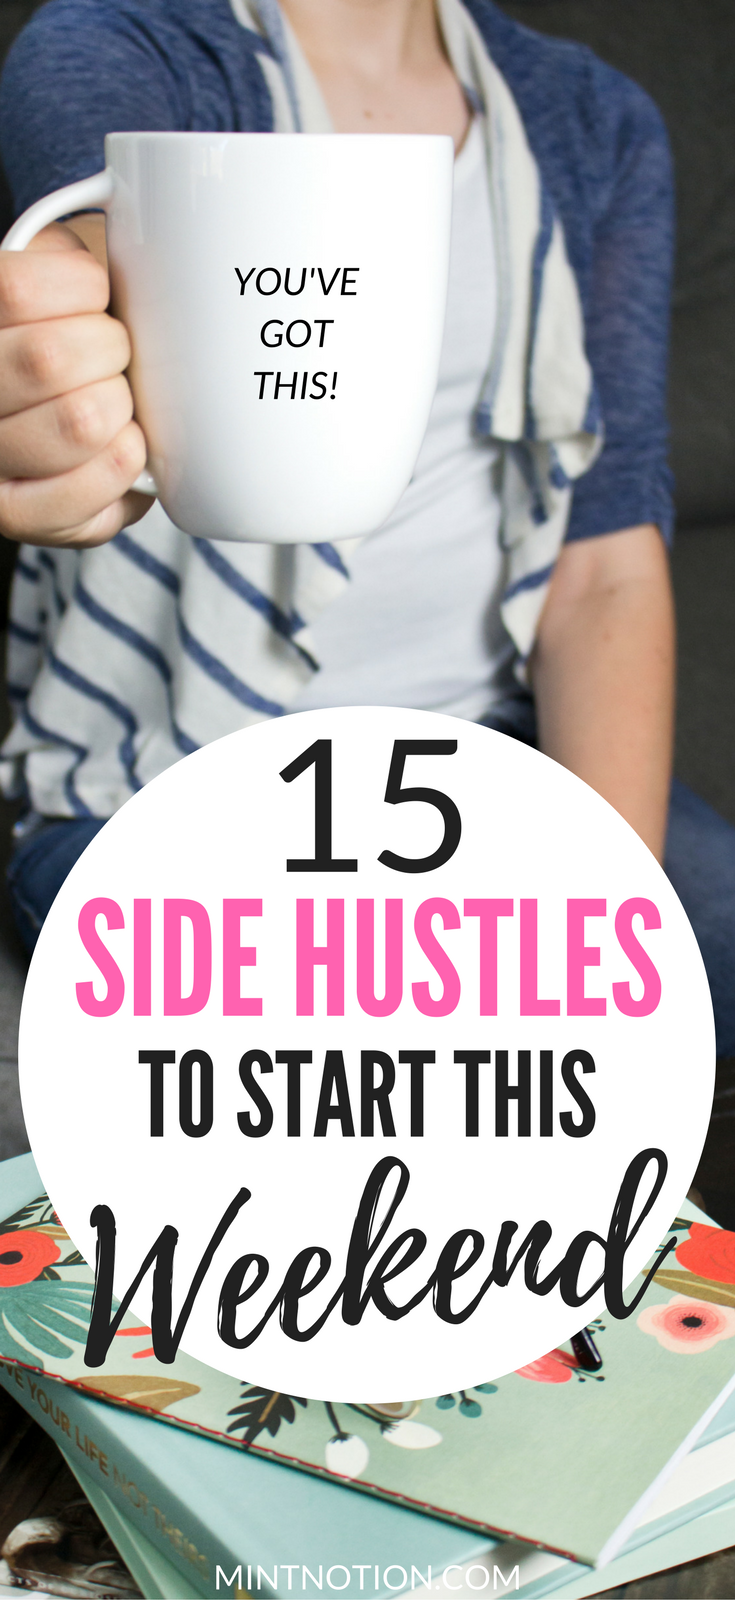 Side Hustle Ideas To Make Extra Money In Your Spare Time | Extra ...